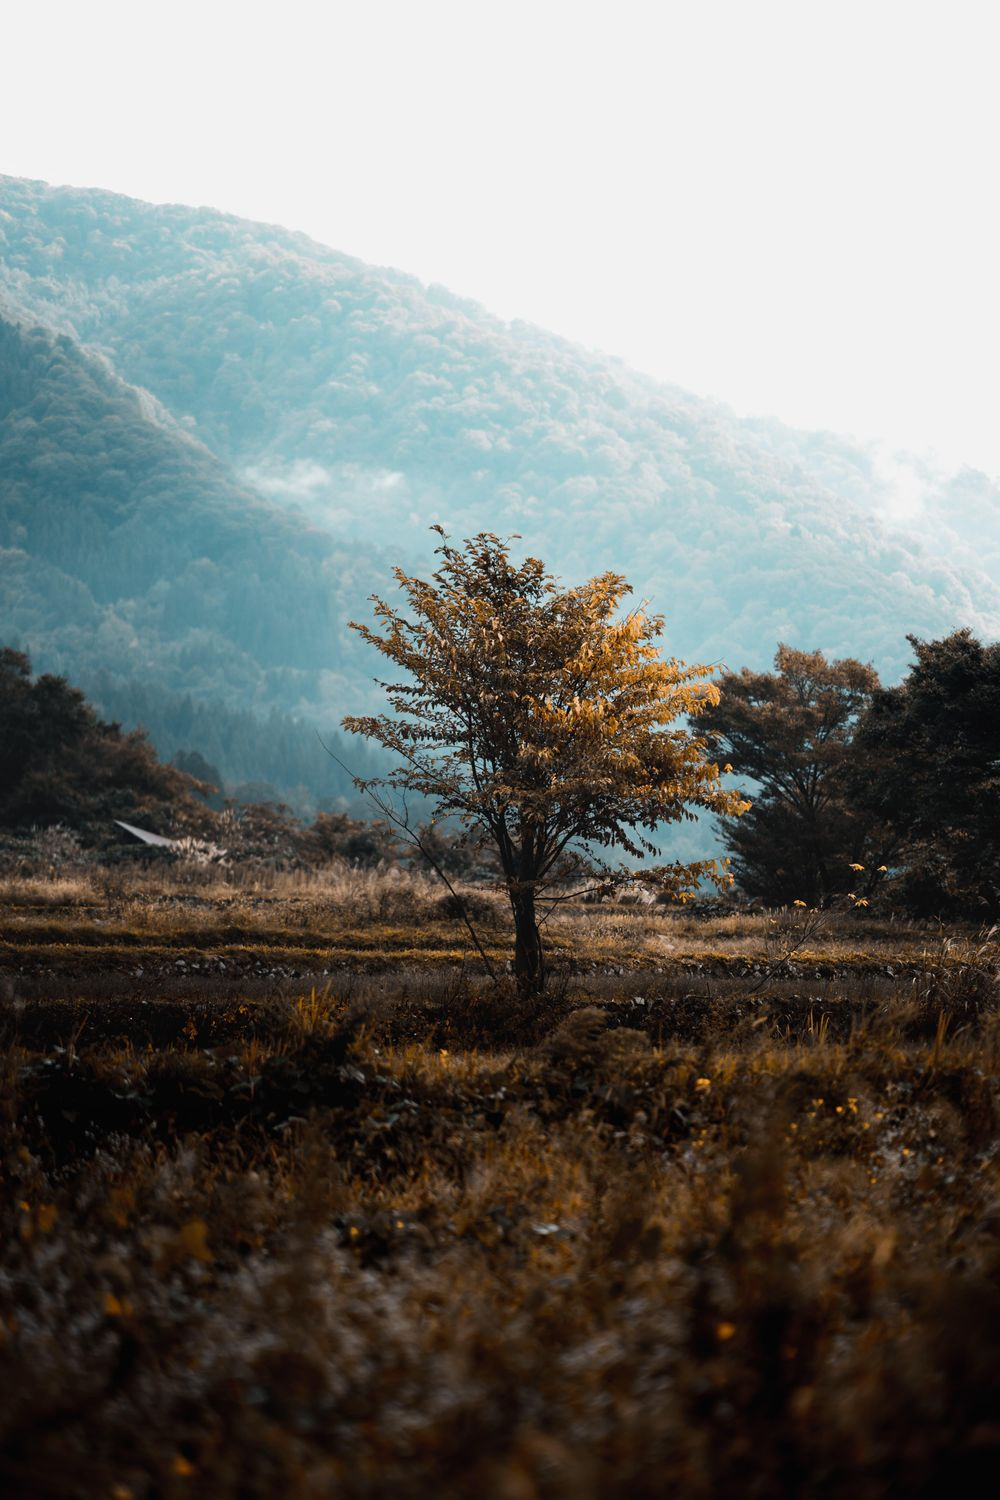 A simple tree - experimenting with editing styles! - image 3 - student project